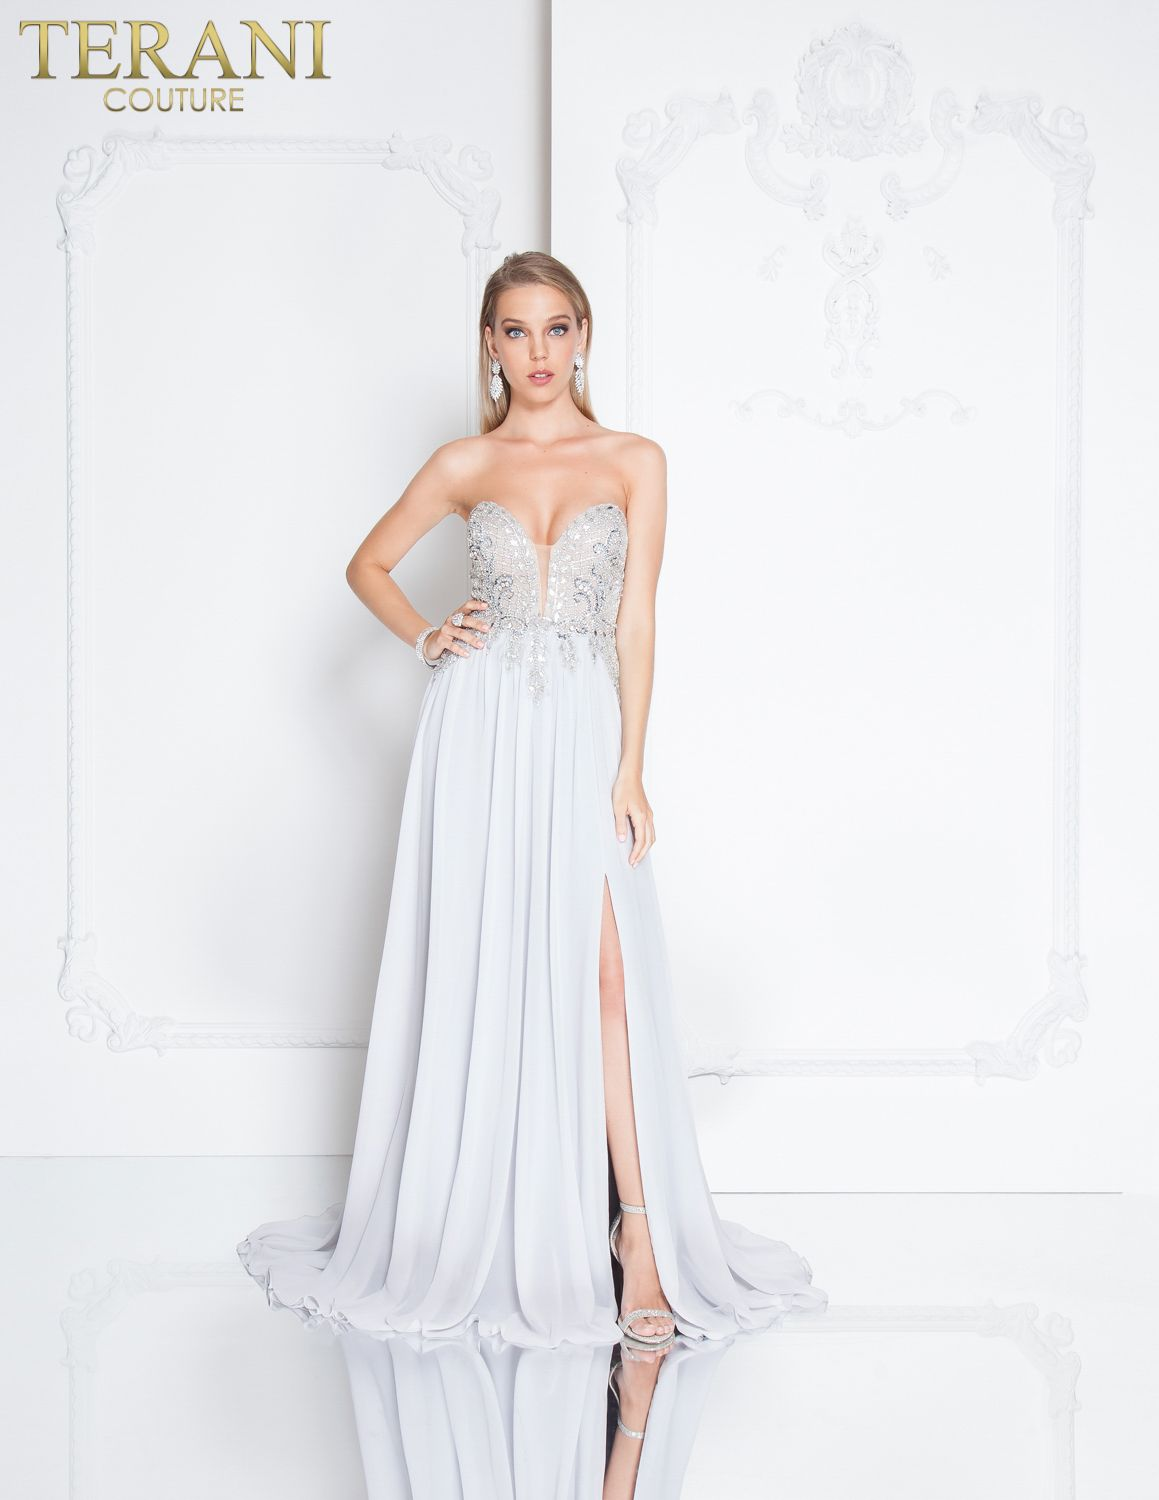 1659c40fcf Sweetheart neckline special occasion dress with intricate bodice beading  and side slit.